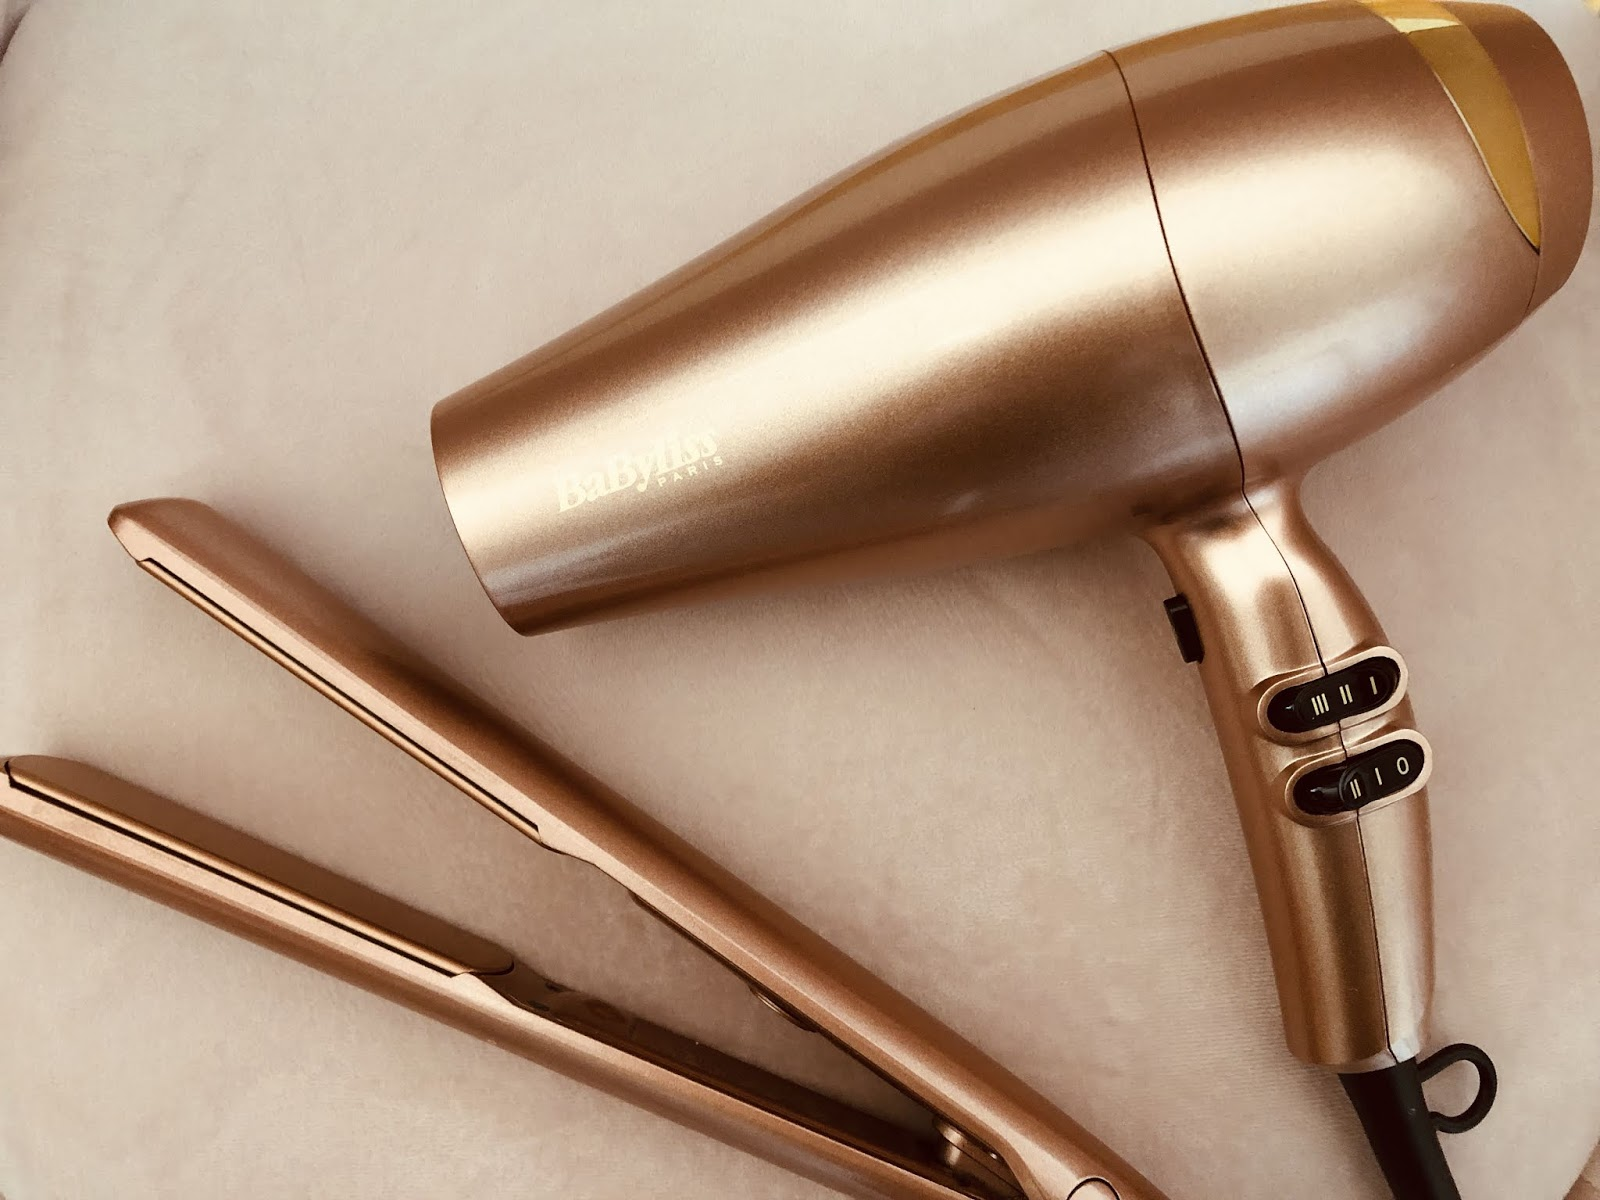 babyliss hais dryer